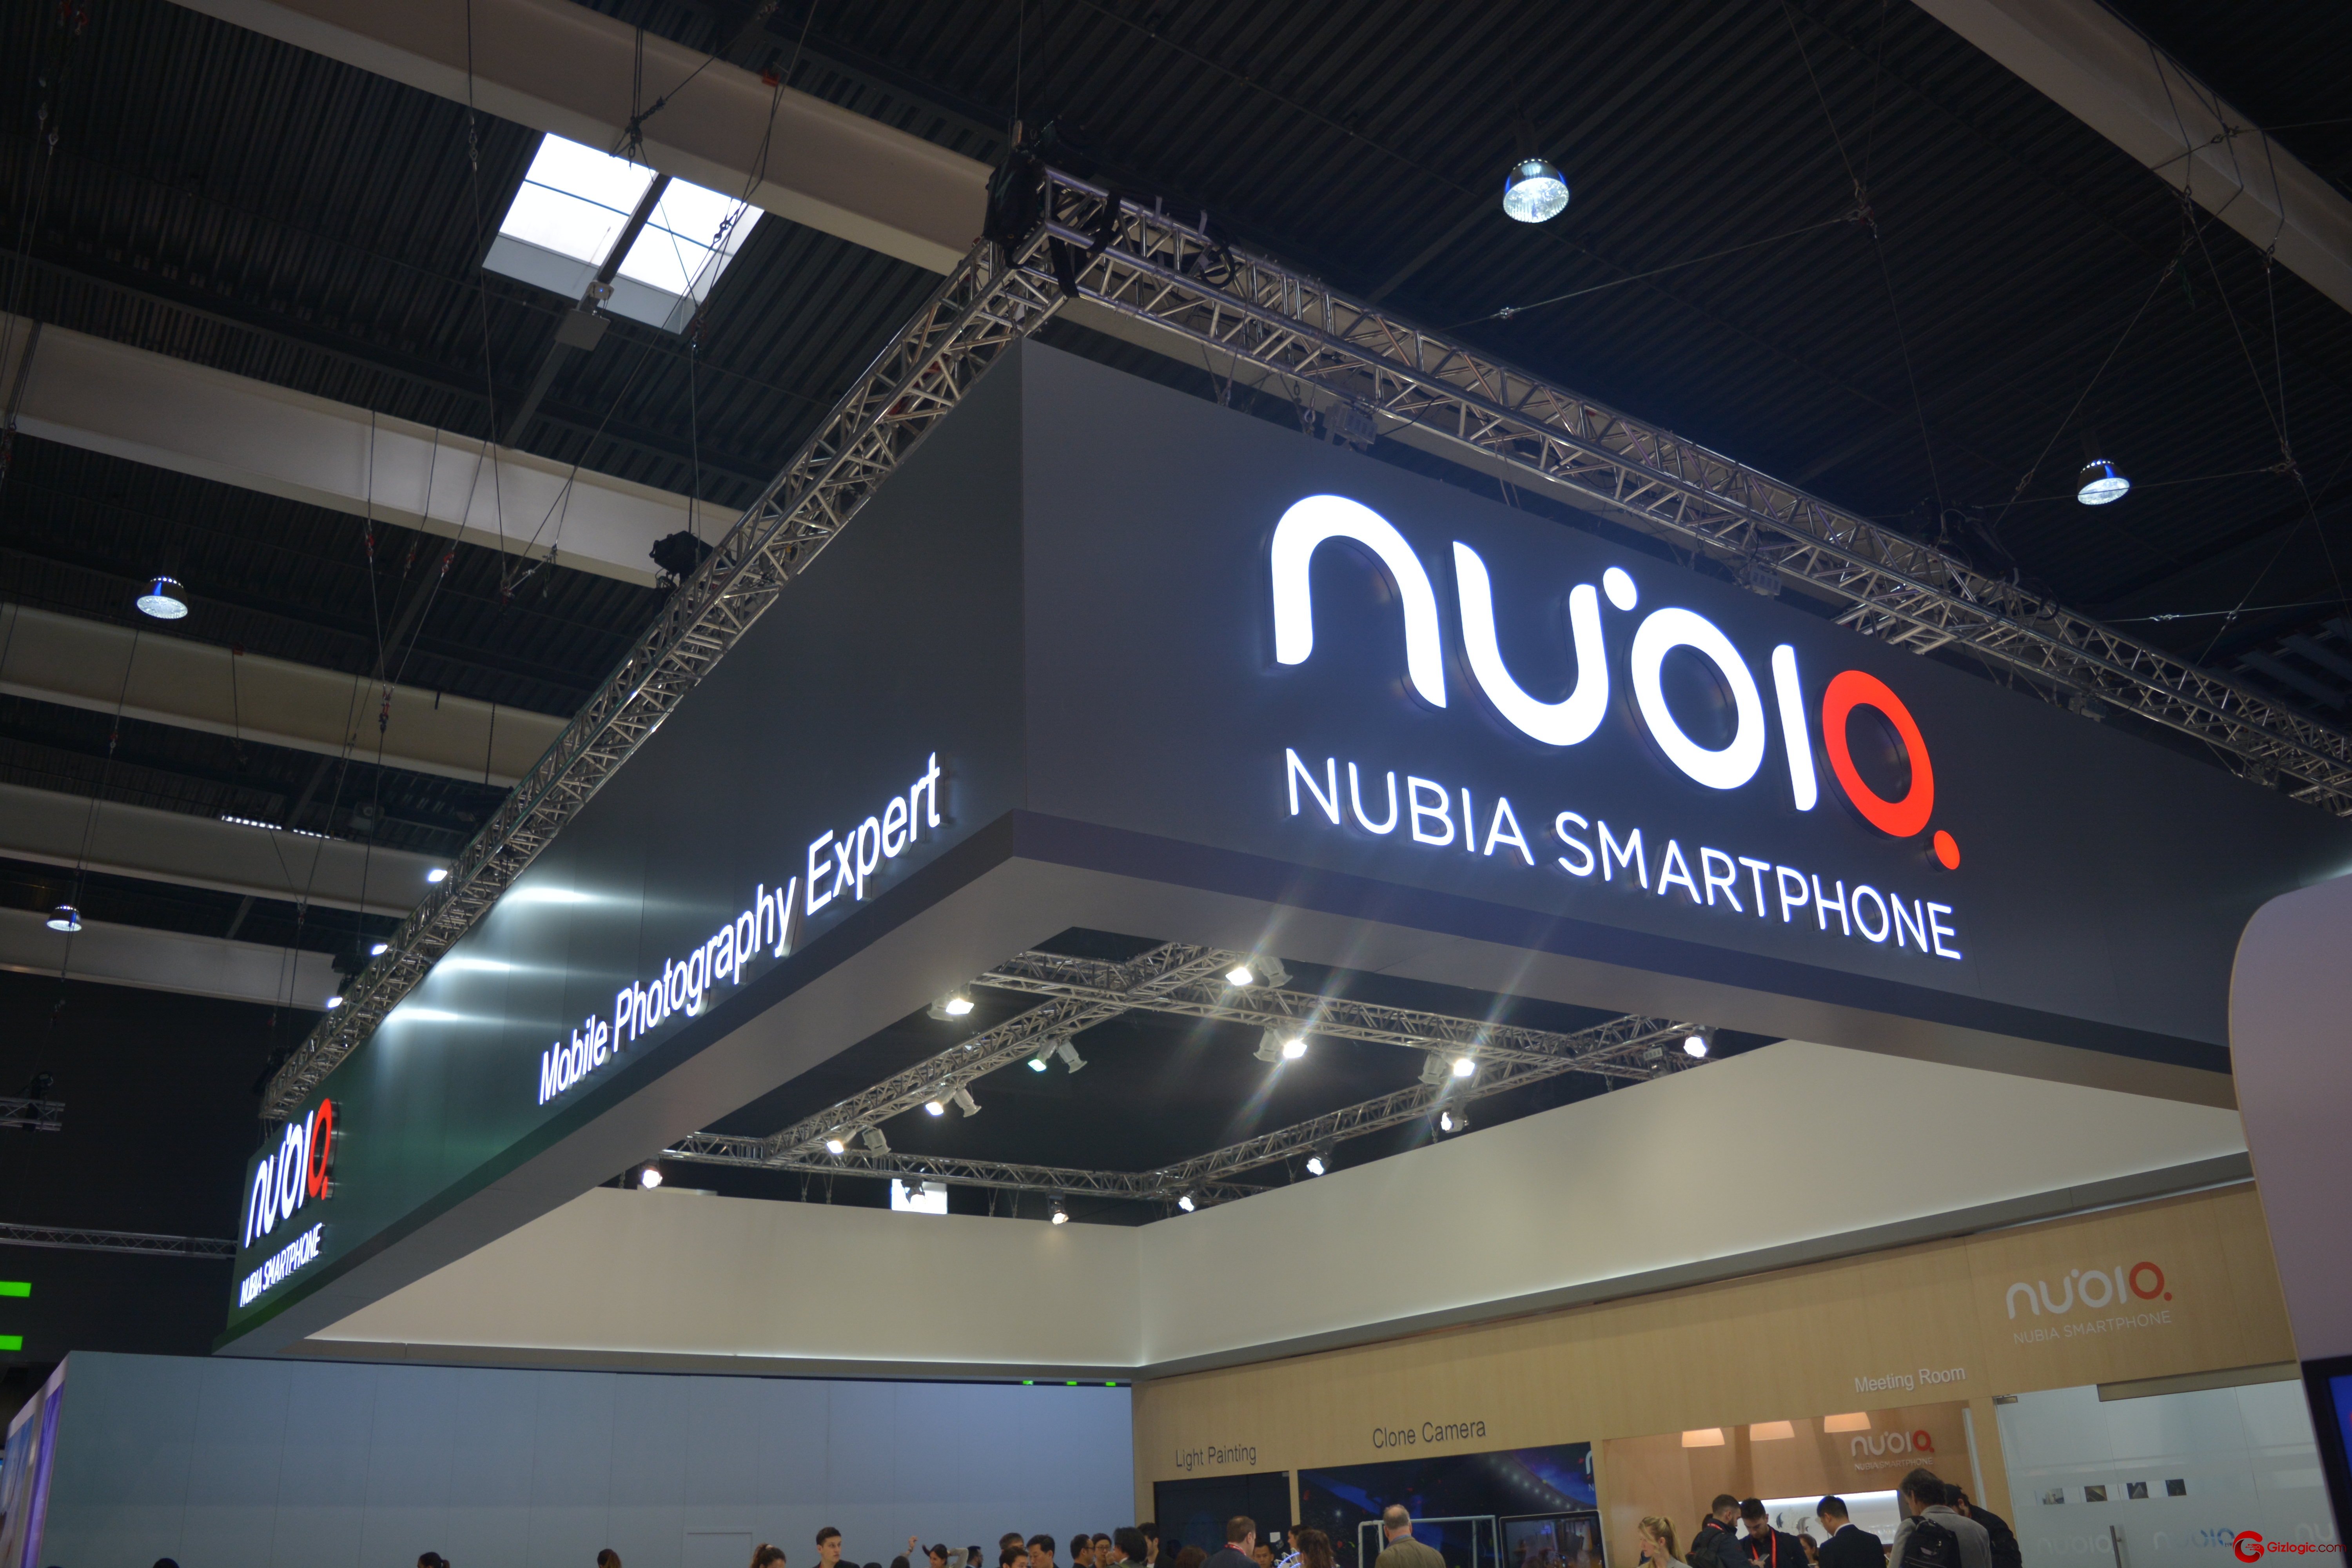 Nubia stand